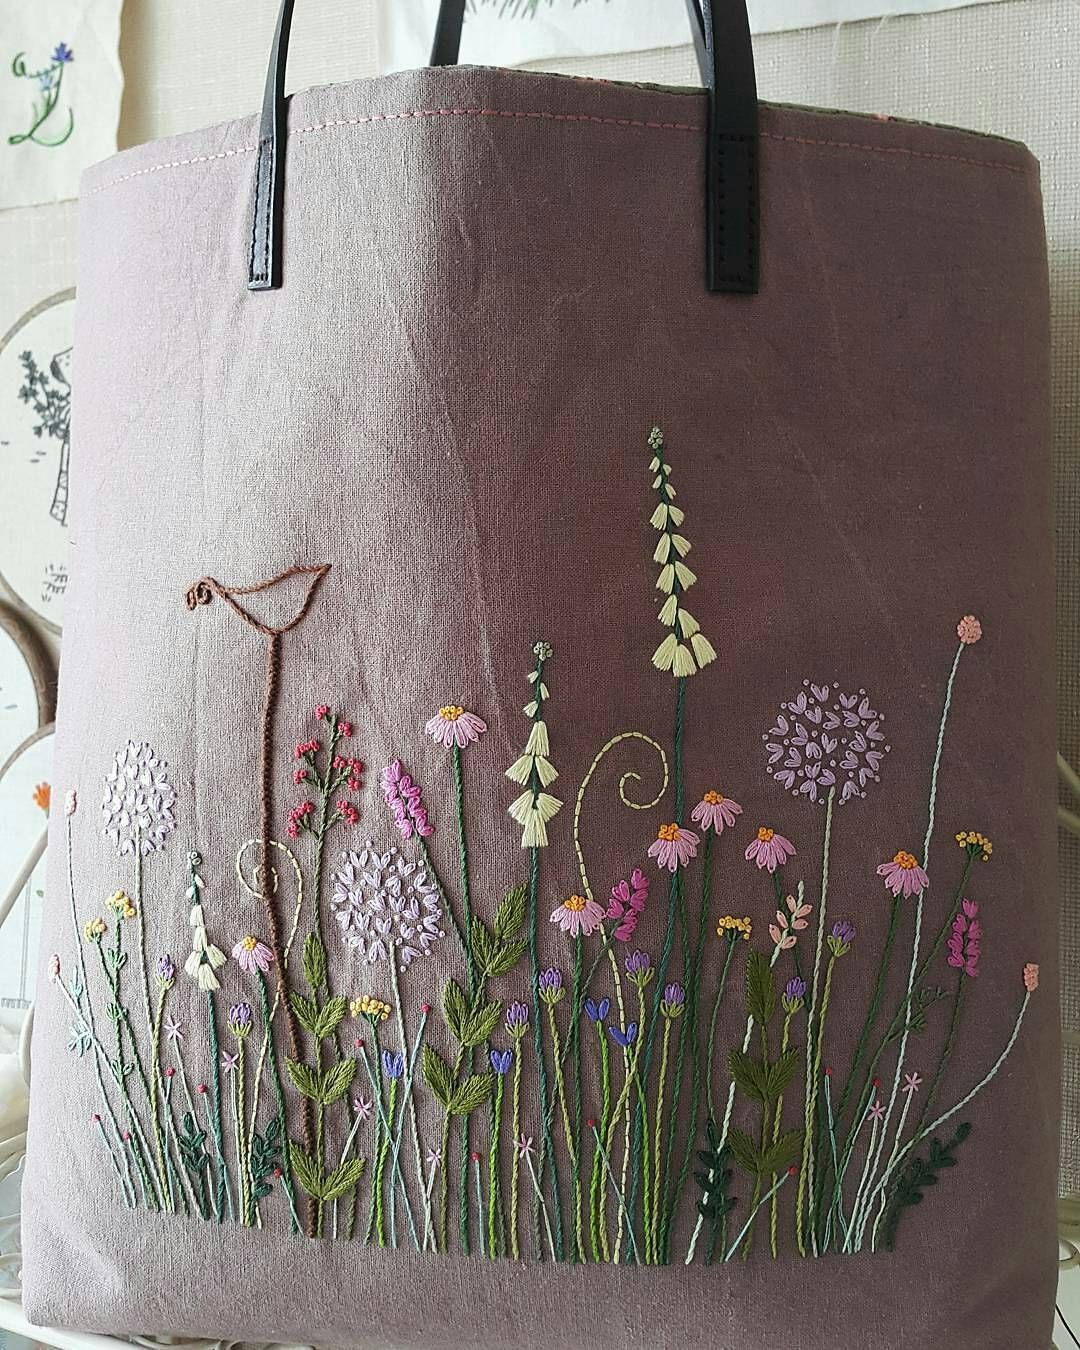 Pin By Gina Kemp On Embroidery Pinterest Embroidery Stitch And Bag